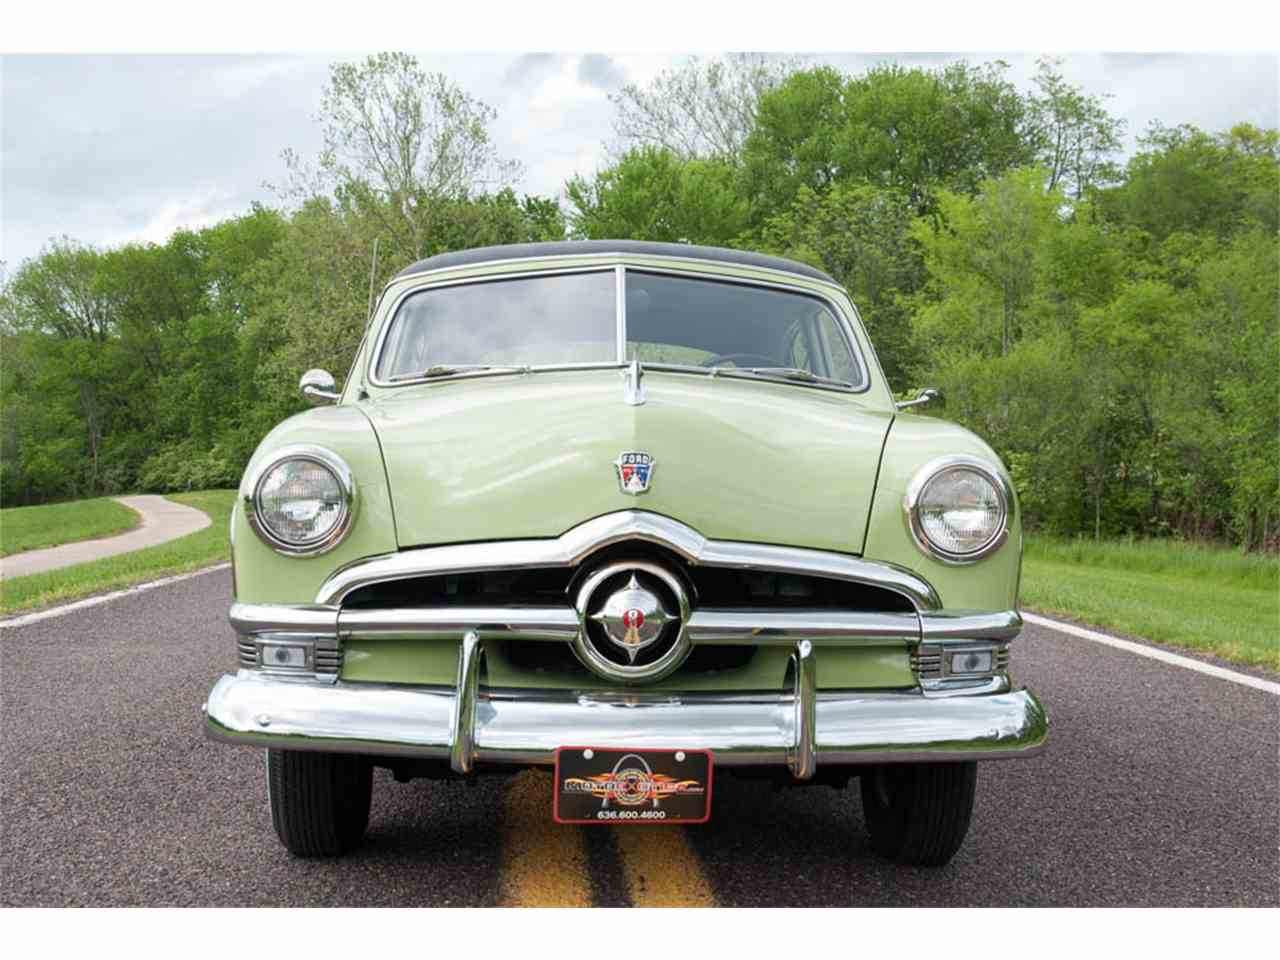 Large Picture of '50 Crestliner Tudor Sedan Offered by MotoeXotica Classic Cars - HO6T